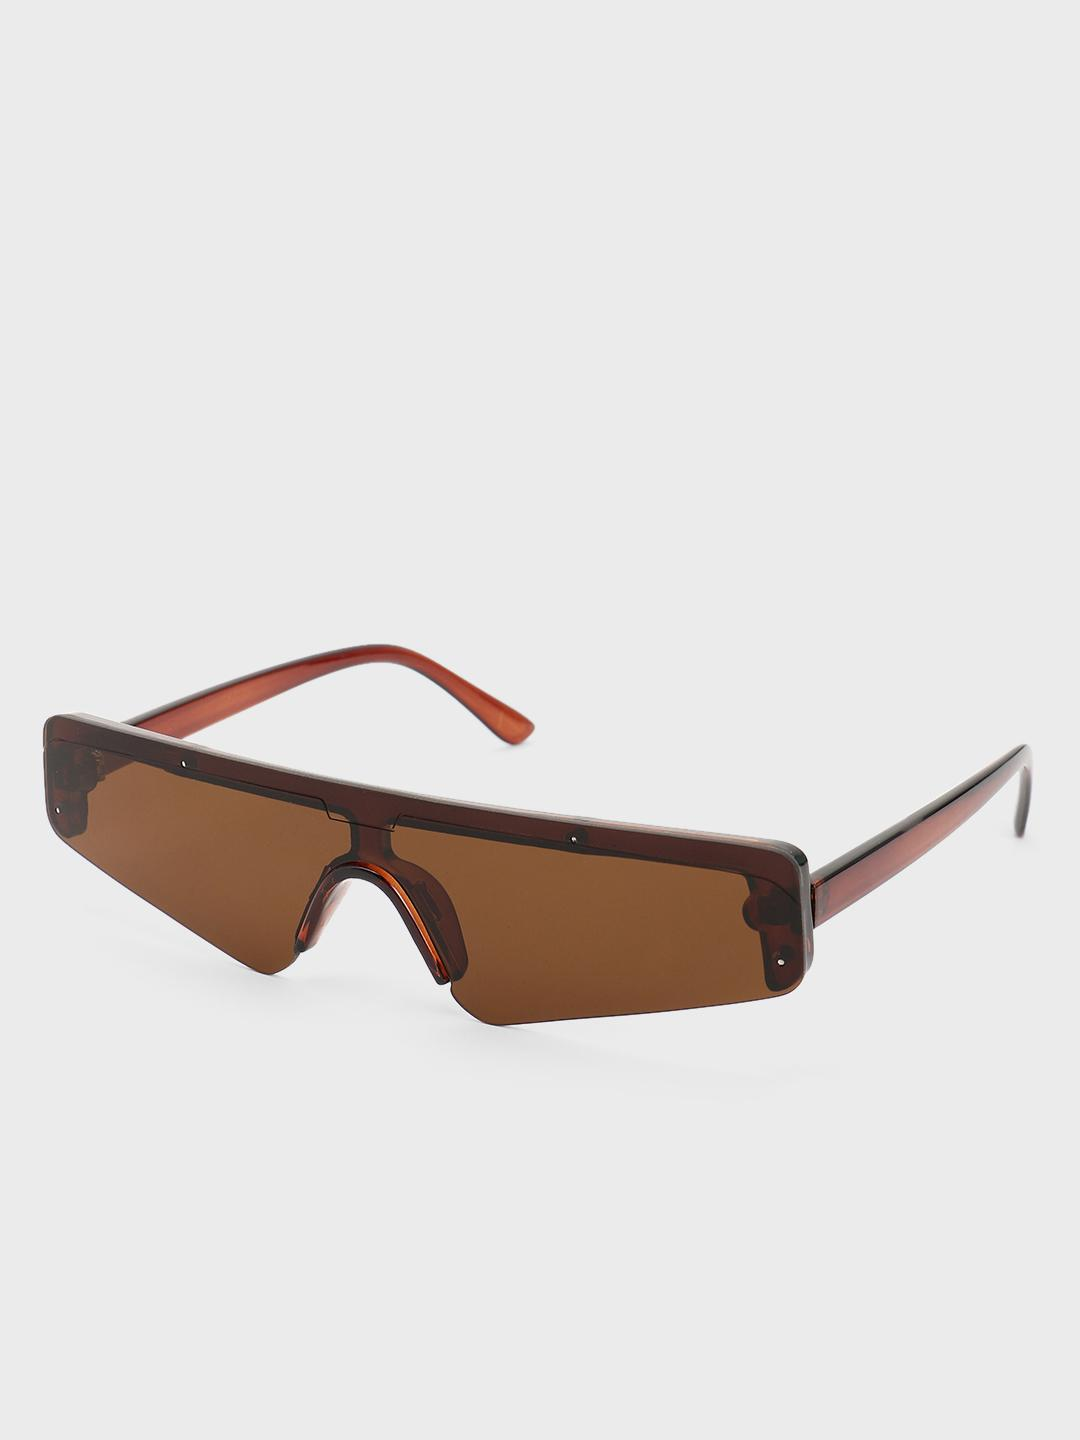 Pataaka Brown Sleek Futuristic Retro Sunglasses 1